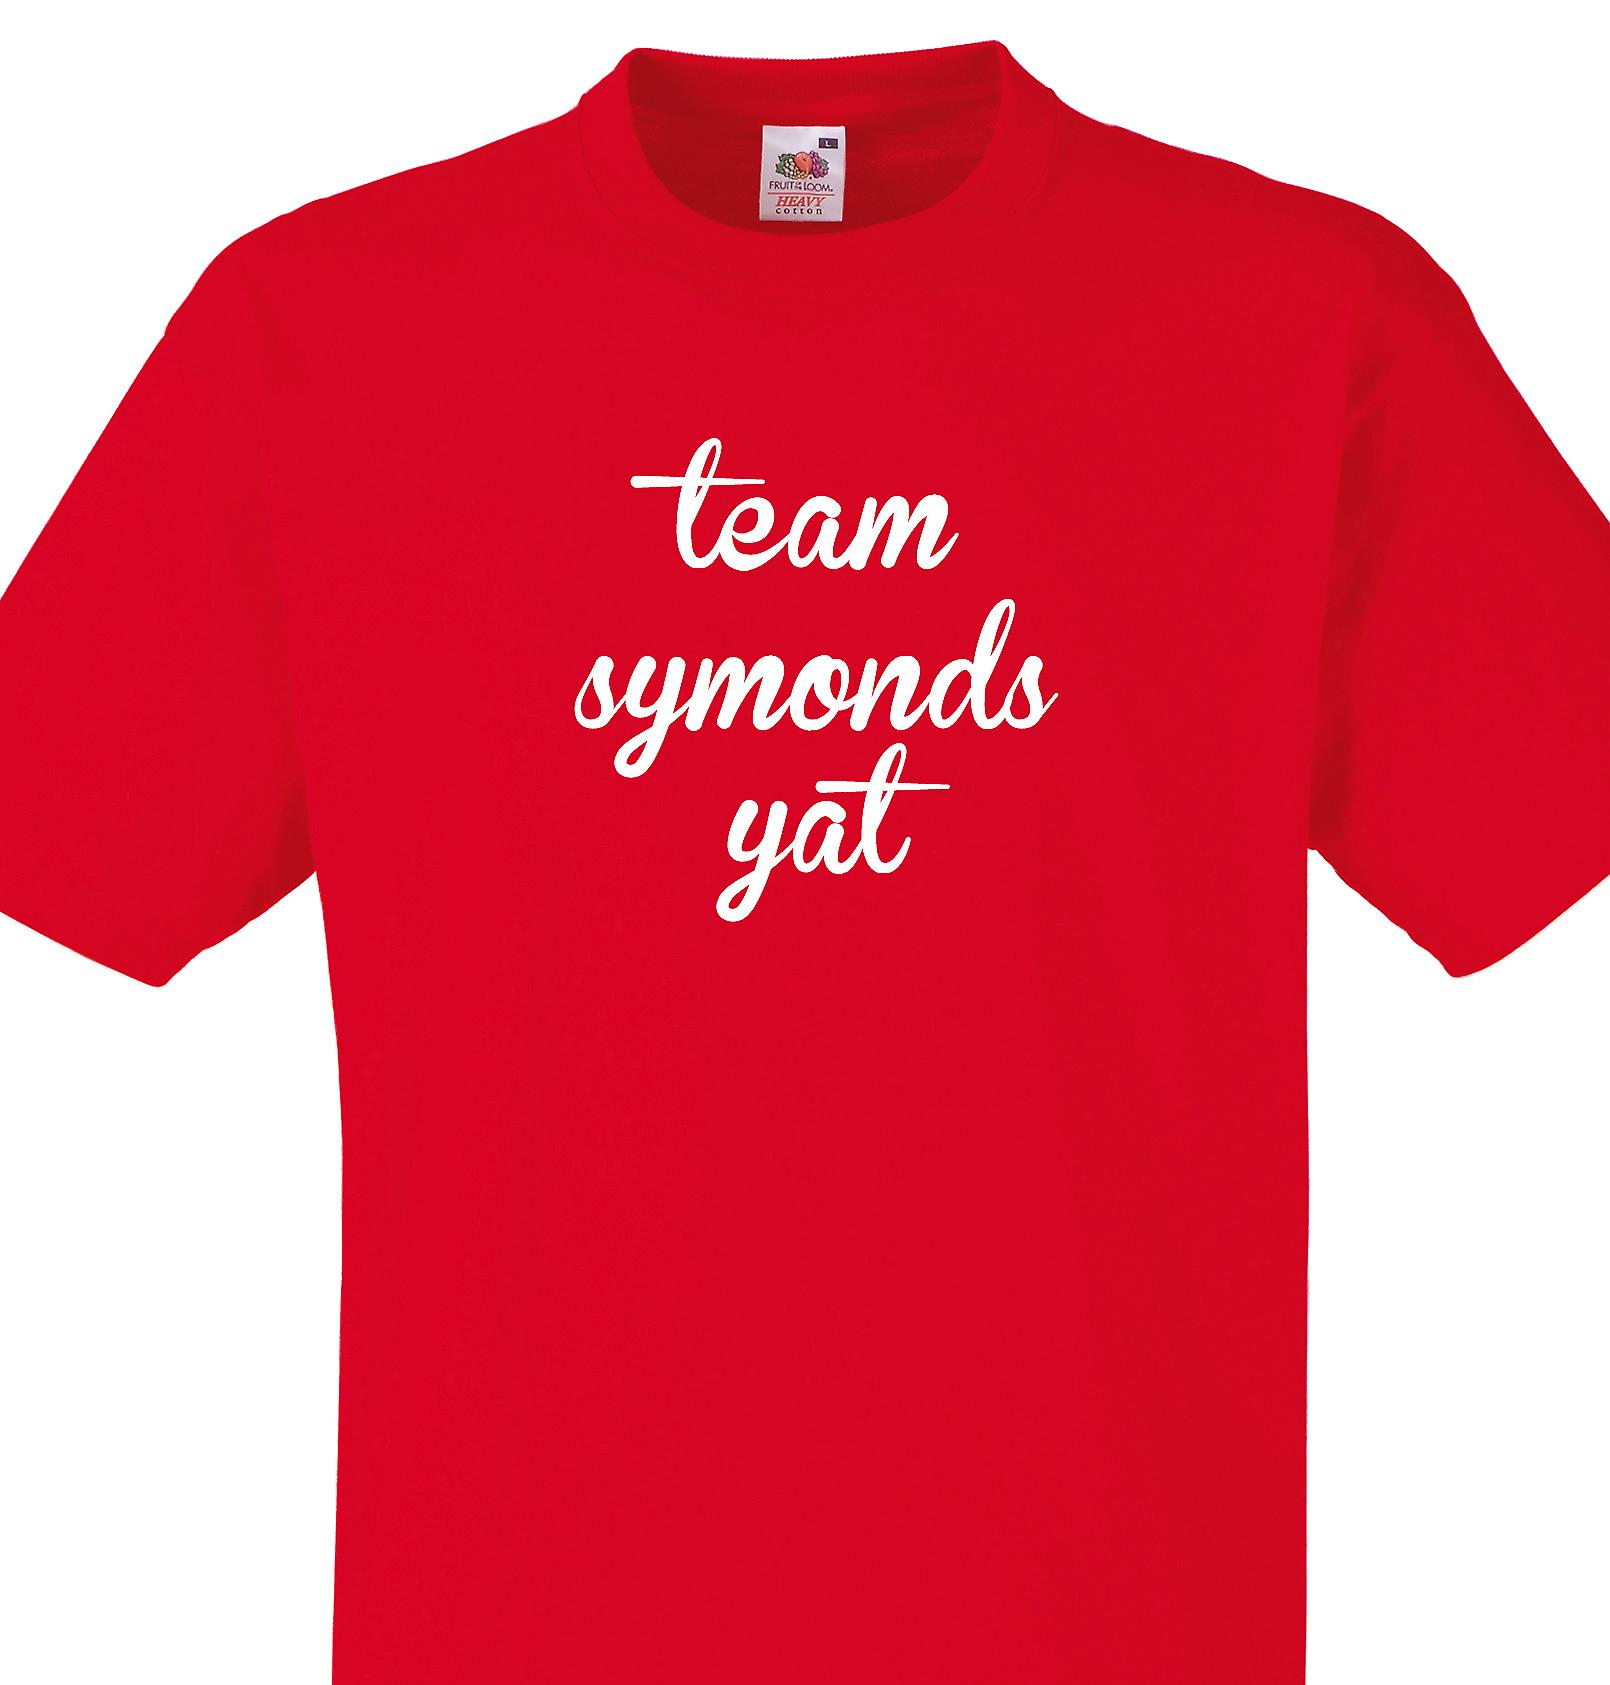 Team Symonds yat Red T shirt